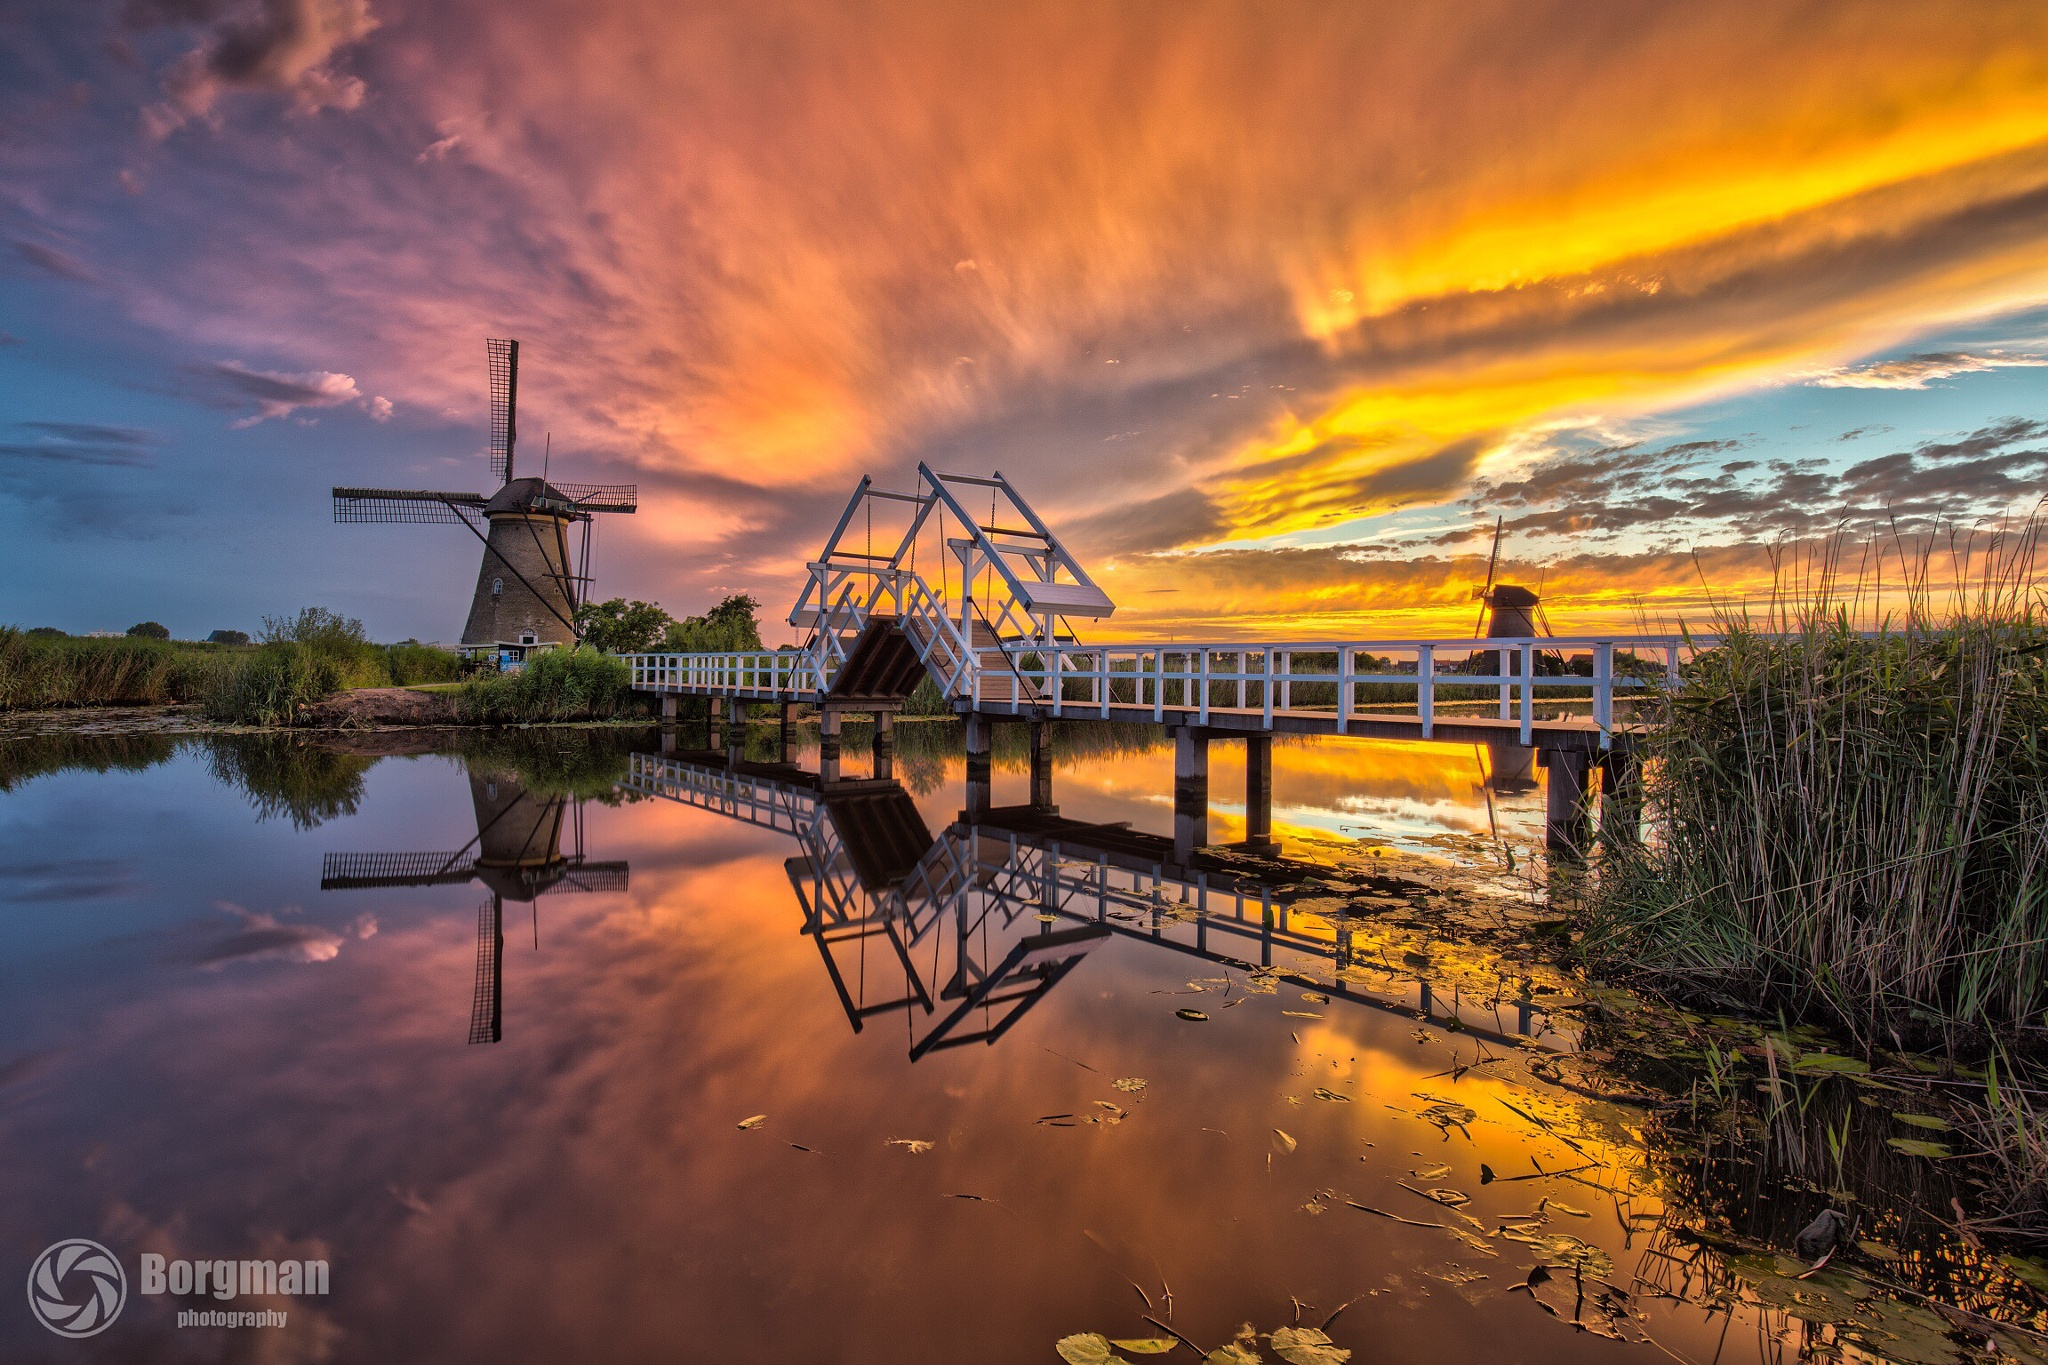 Kinderdijk on fire by Elwin